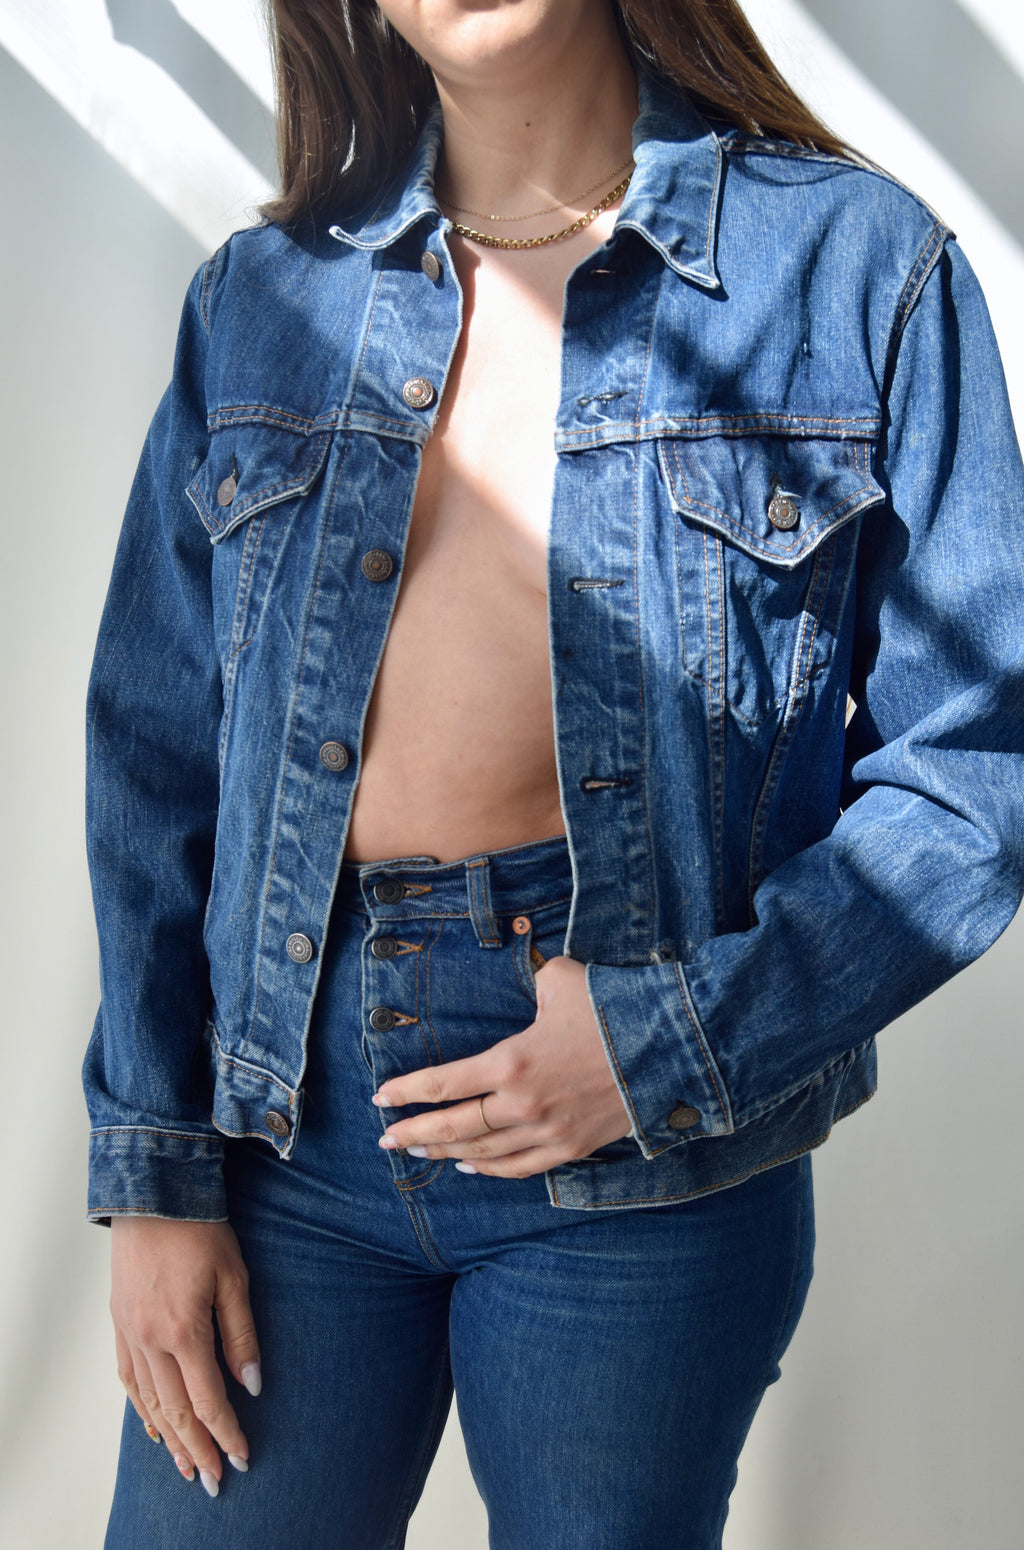 Vintage Levis Made in USA Denim Jacket